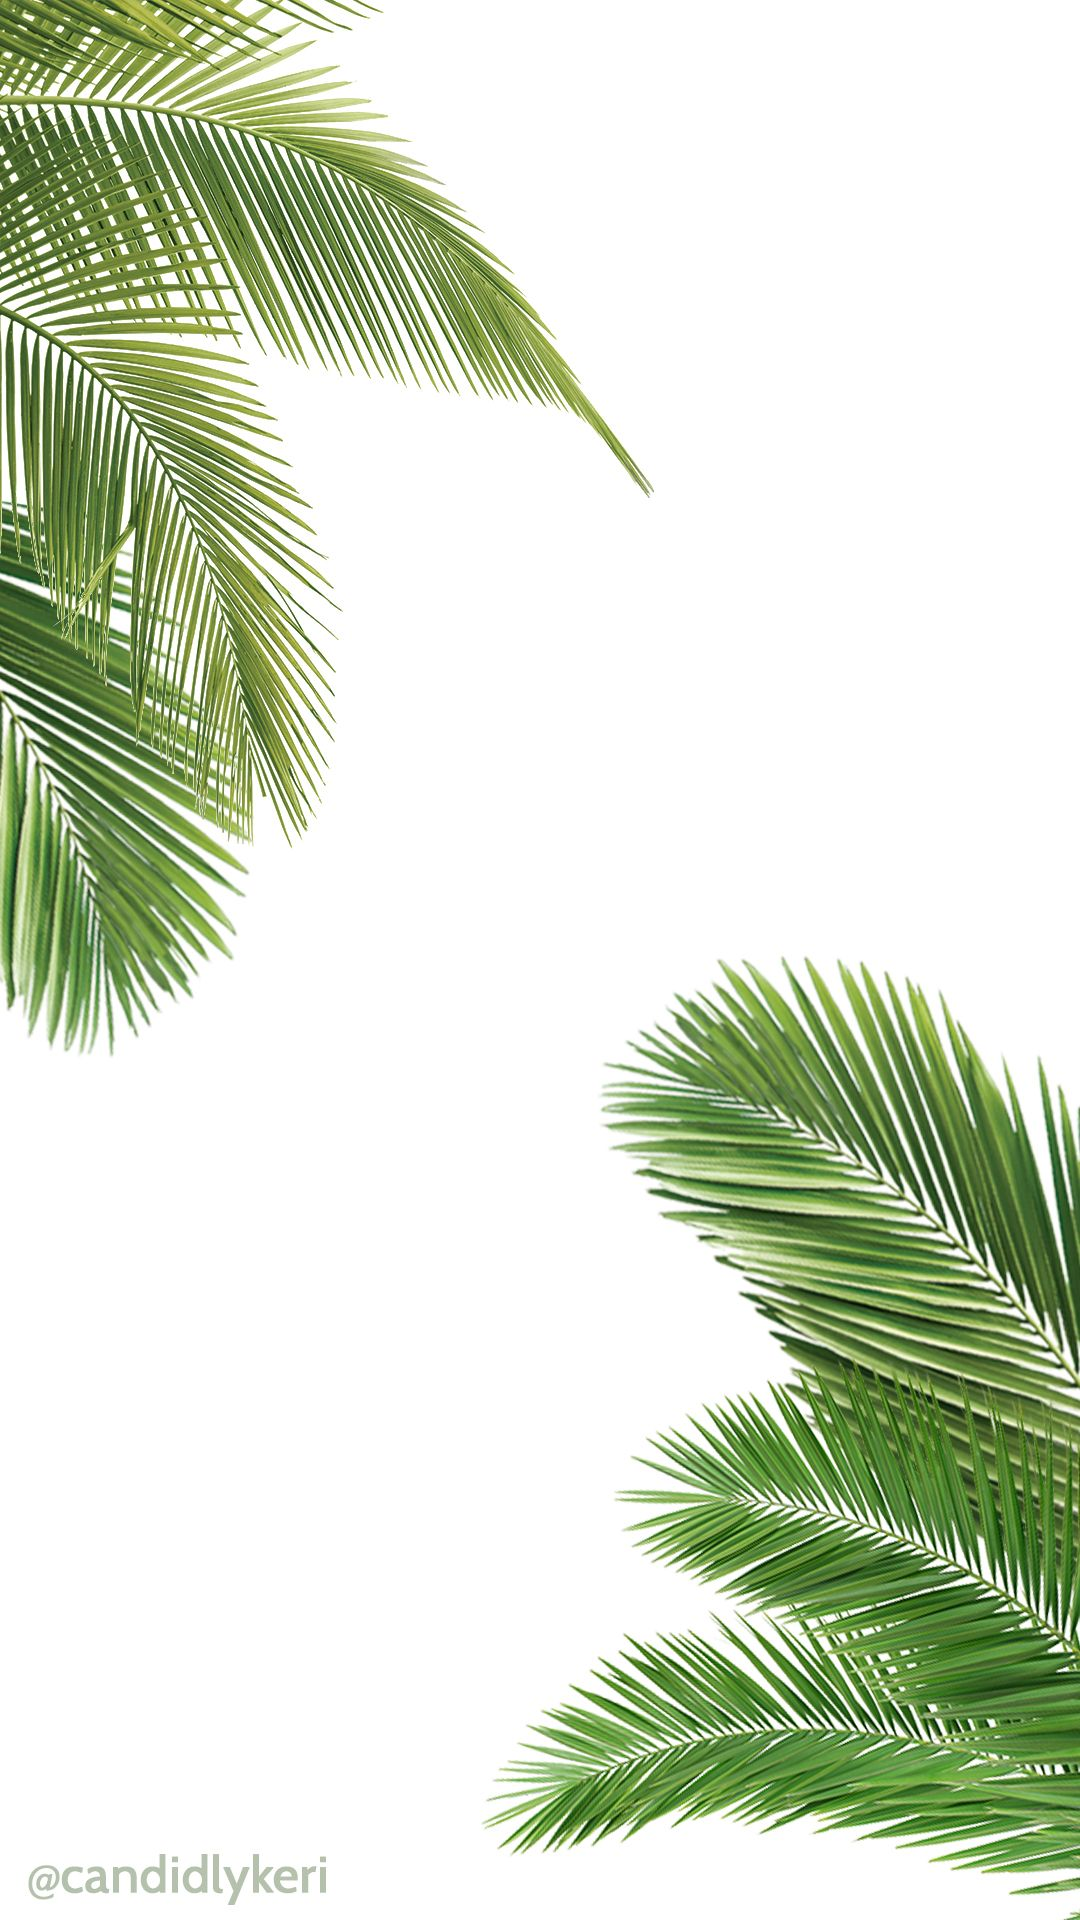 Palm Tree And White Wallpaper Free Download For Iphone Android Or